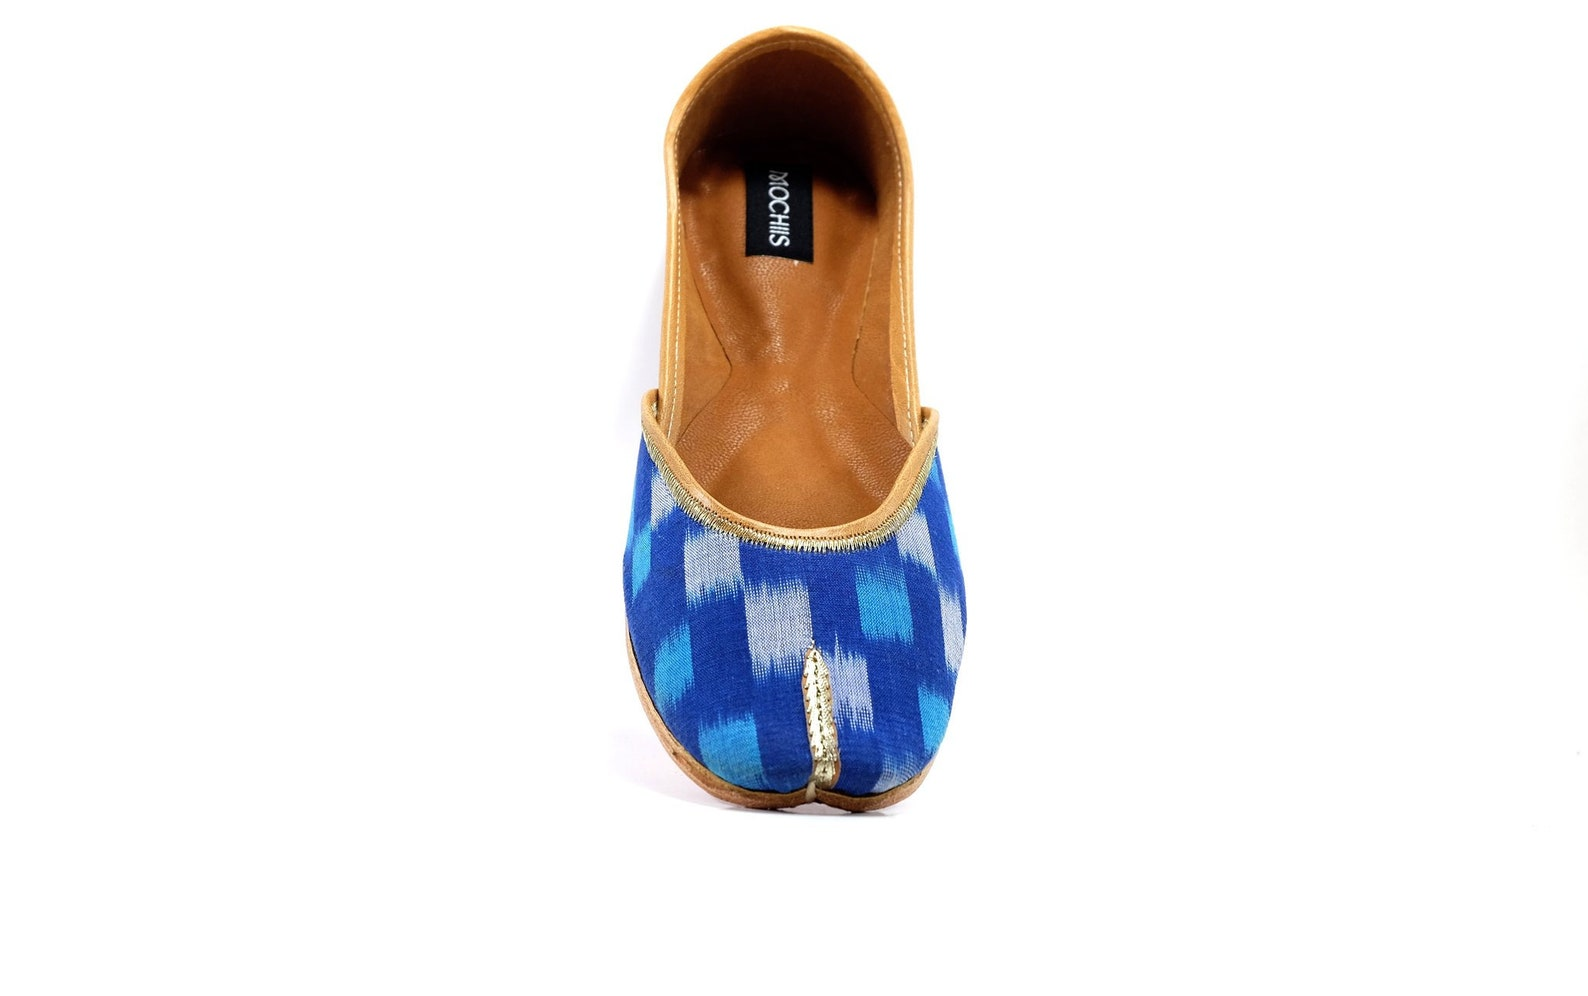 azure - handmade leather ballet flats - ikat juttis - traditional jutti / mojari / khussa with a contemporary twist